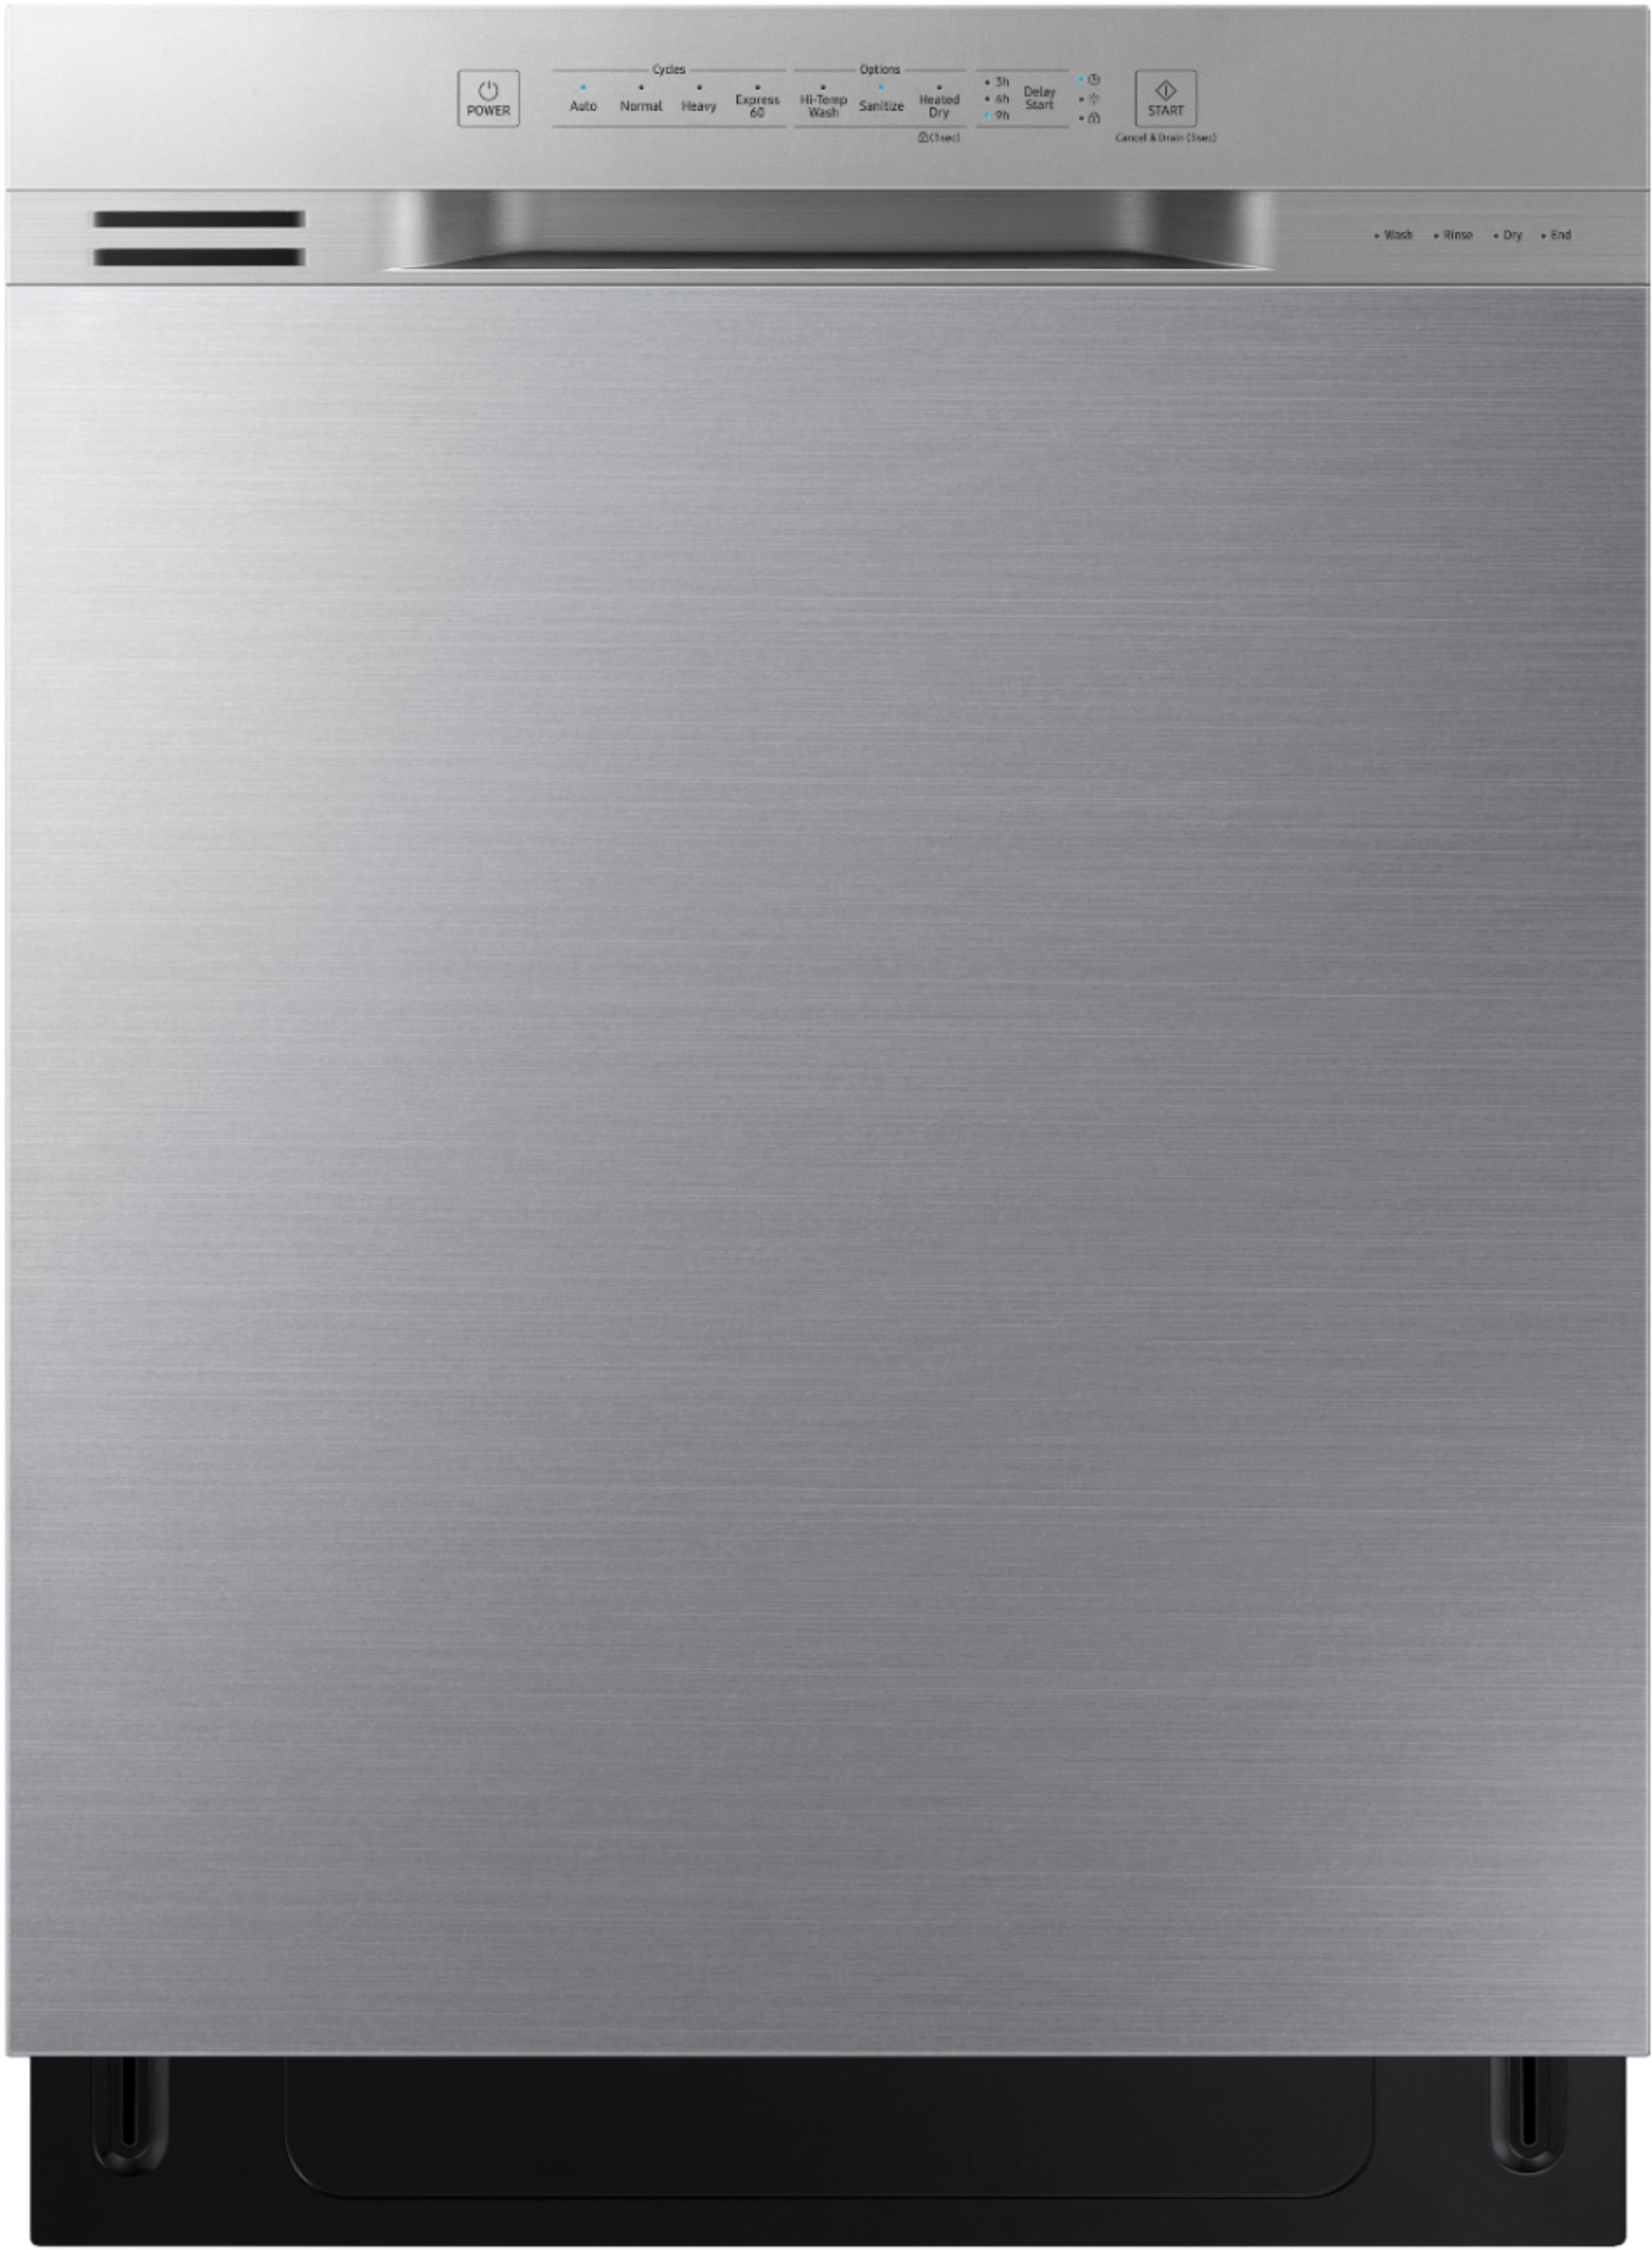 Samsung 24 Front Control Built In Dishwasher Stainless Steel Dw80n3030us Best Buy Built In Dishwasher Samsung Dishwasher Stainless Steel Dishwasher